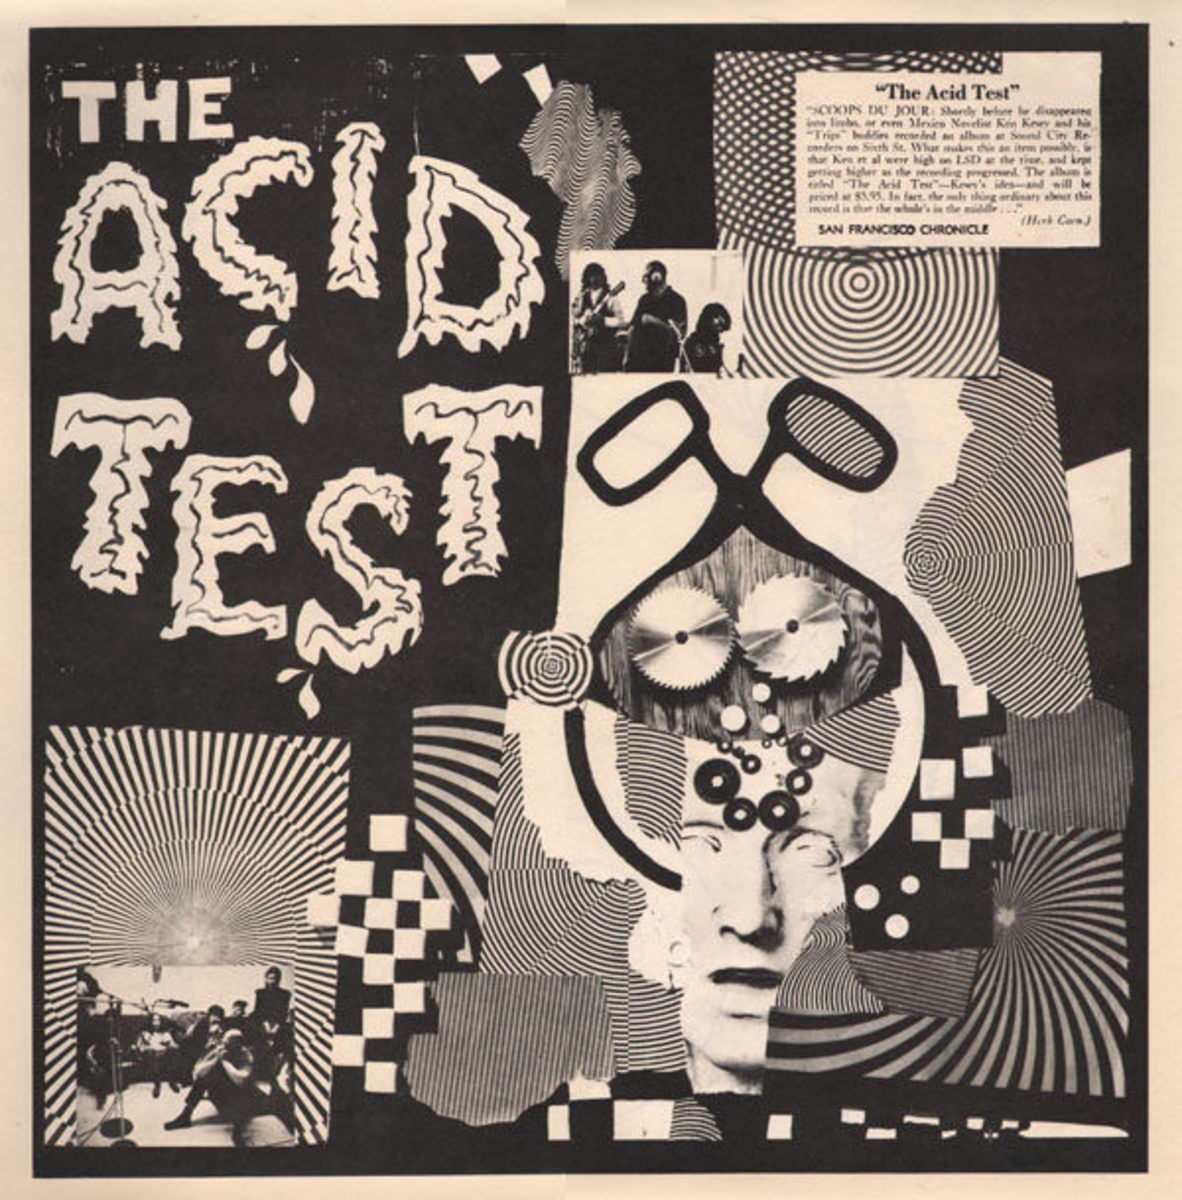 "The Grateful Dead / Ken Kesey and the Merry Pranksters Sound City Studios ""Acid Test"" Trips Festival Mandatory January 29, 1966 Promotional Poster 14"" x 14"" (1966)"